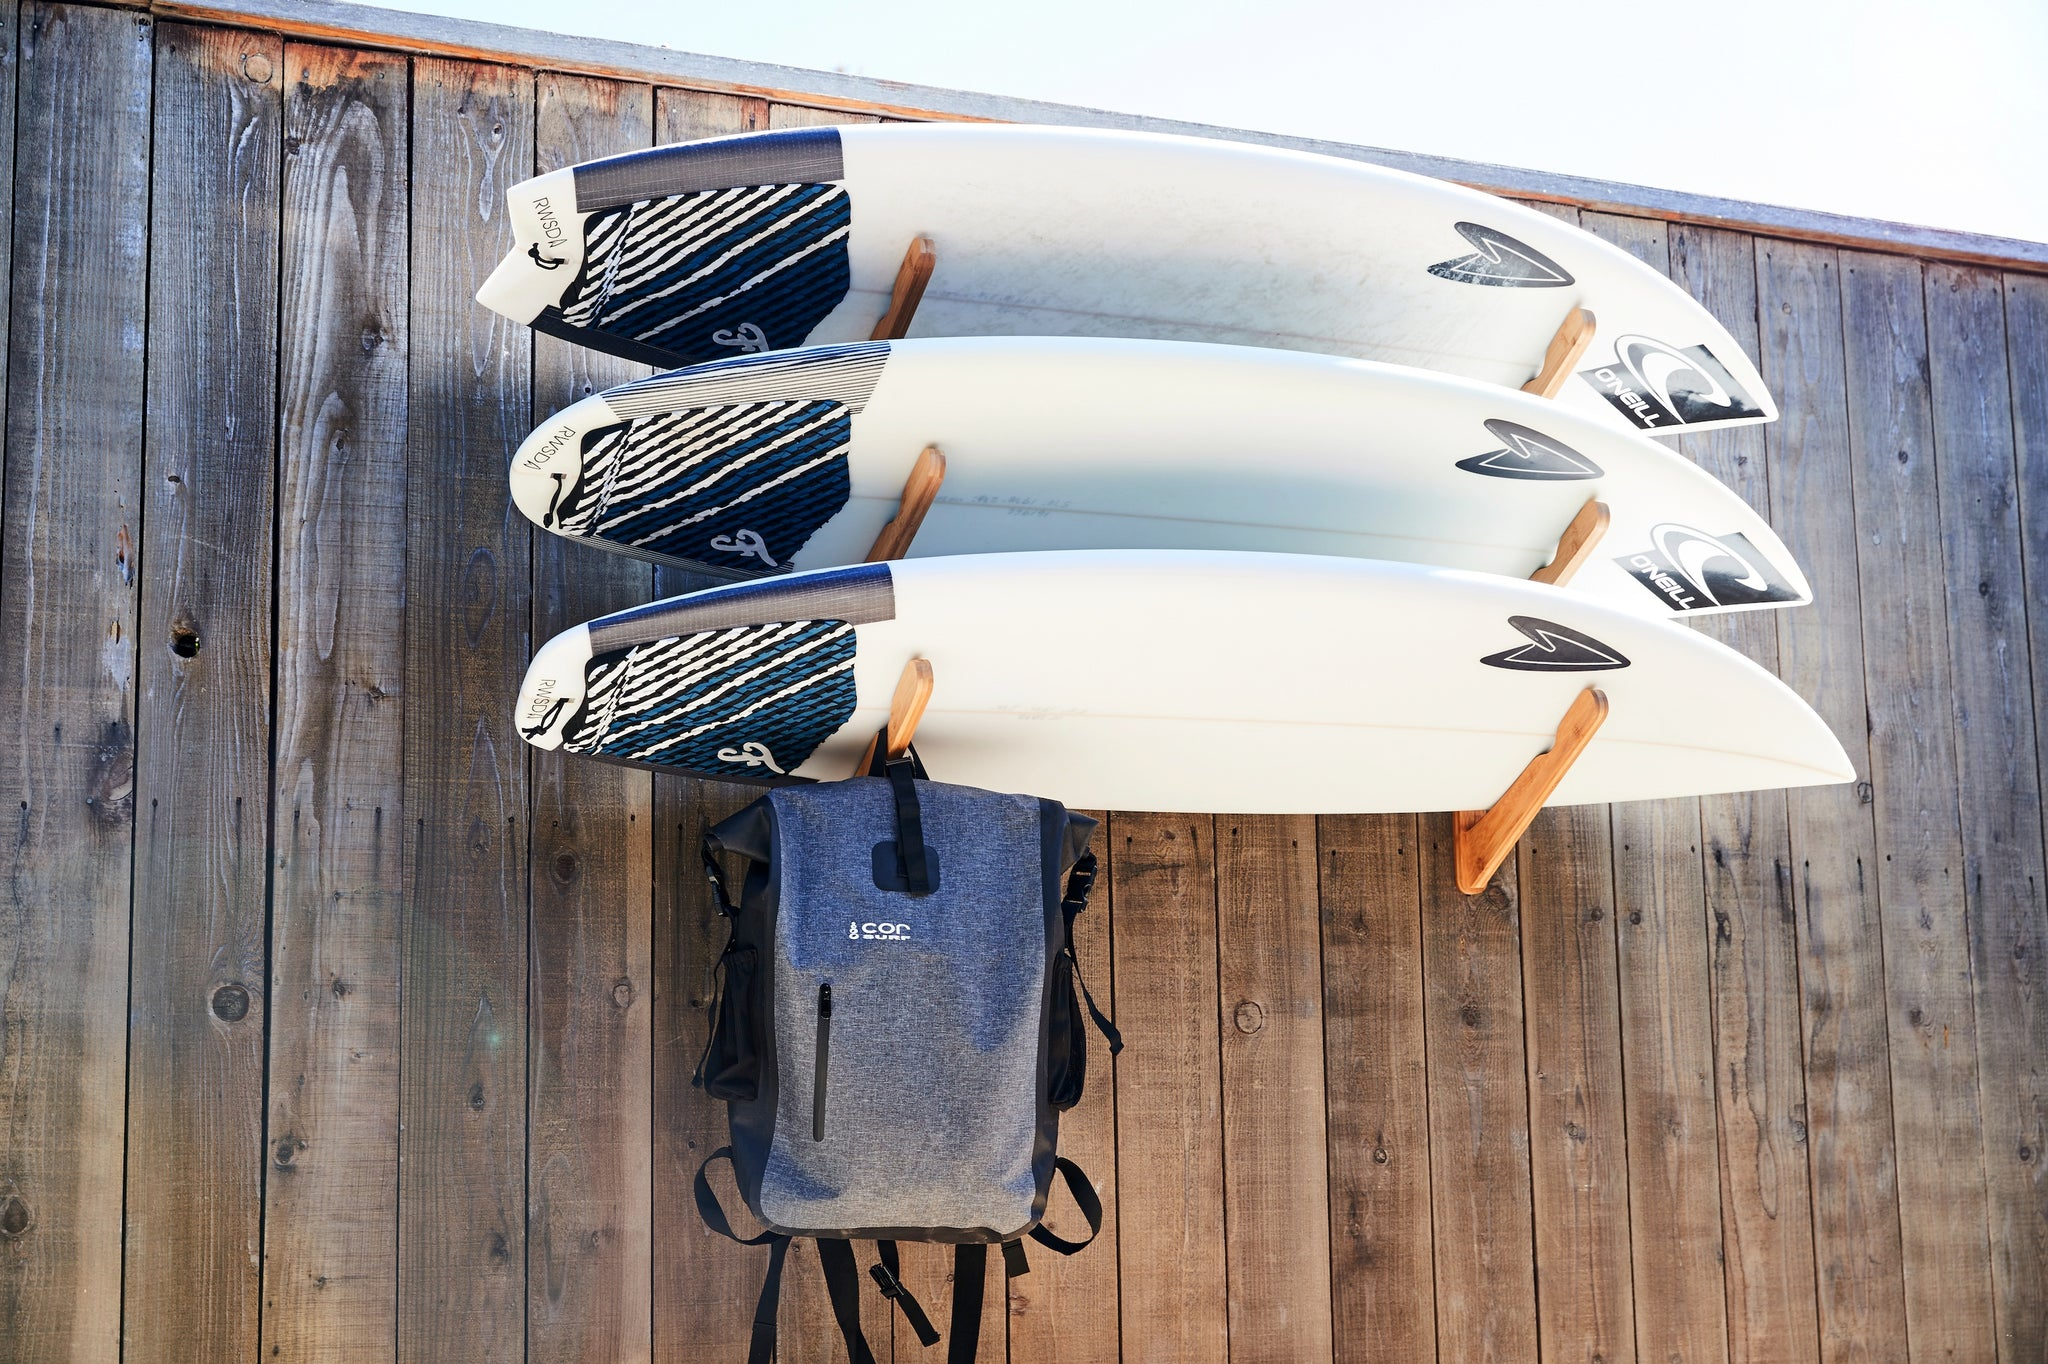 Get your Surfboards Organized with COR Surf and Paddleboard Racks